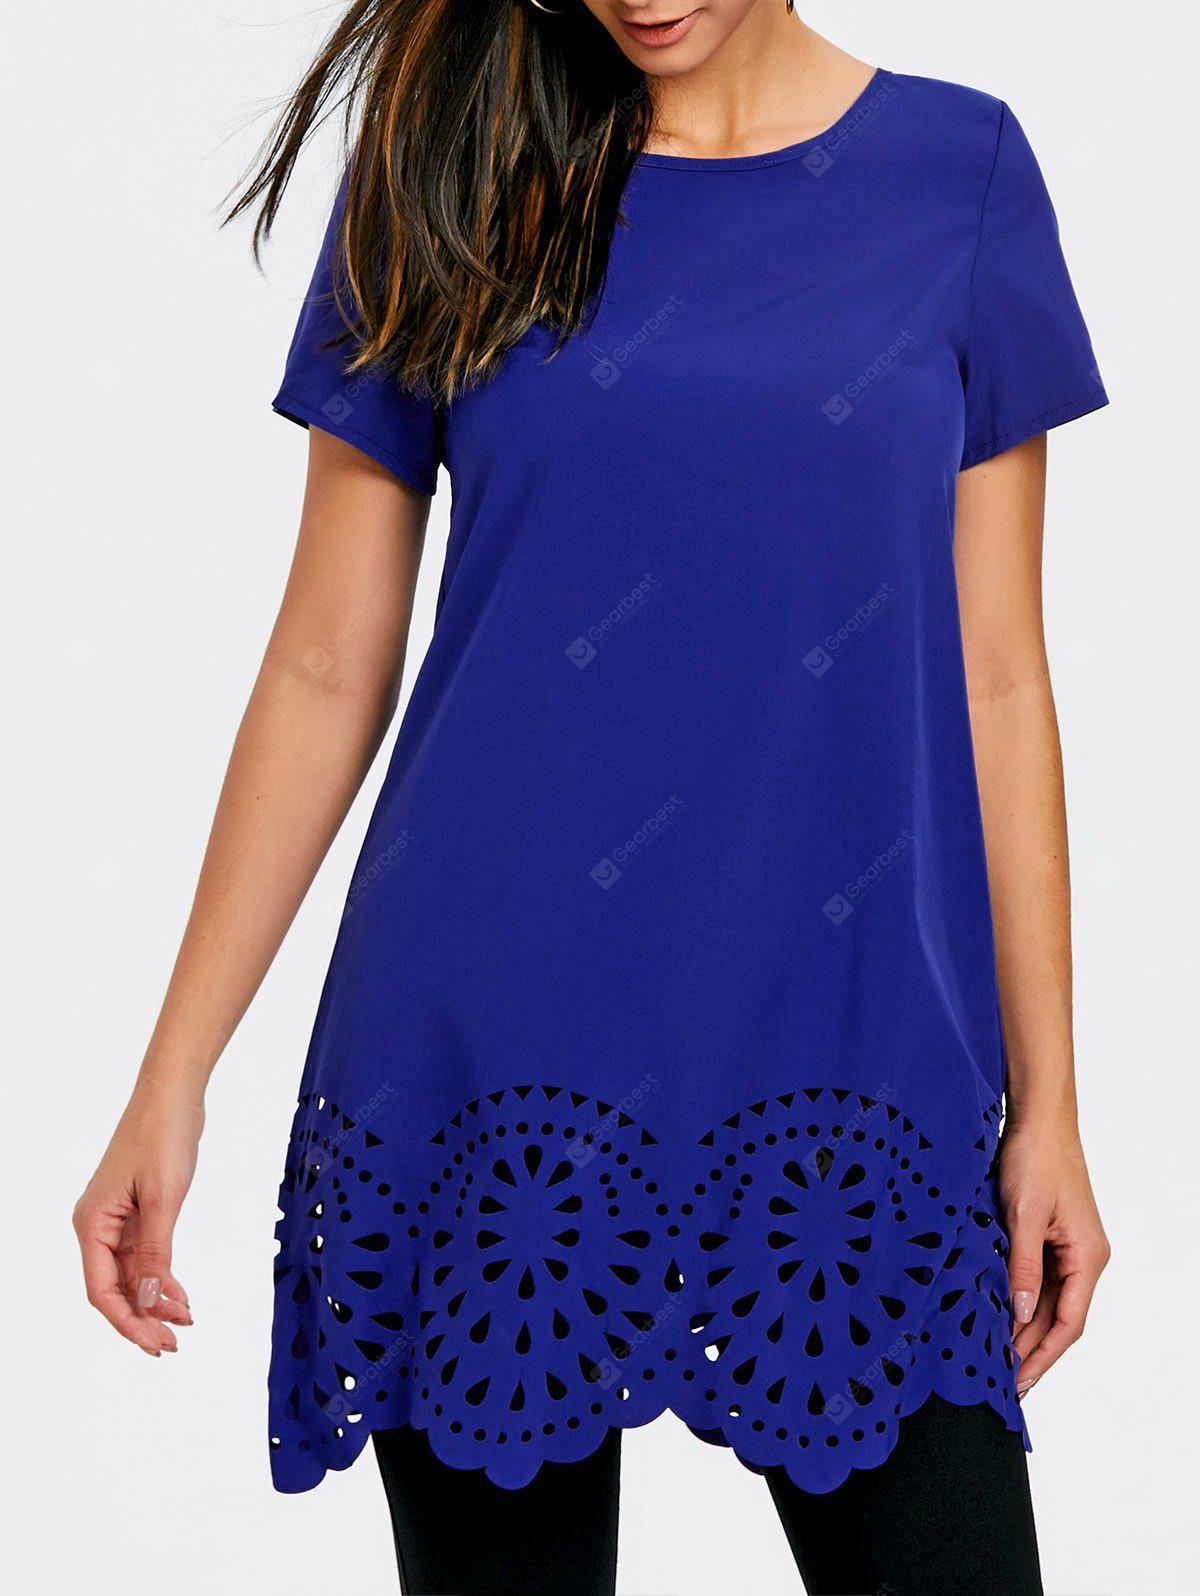 Openwork Scalloped Edge Tunic T-shirt